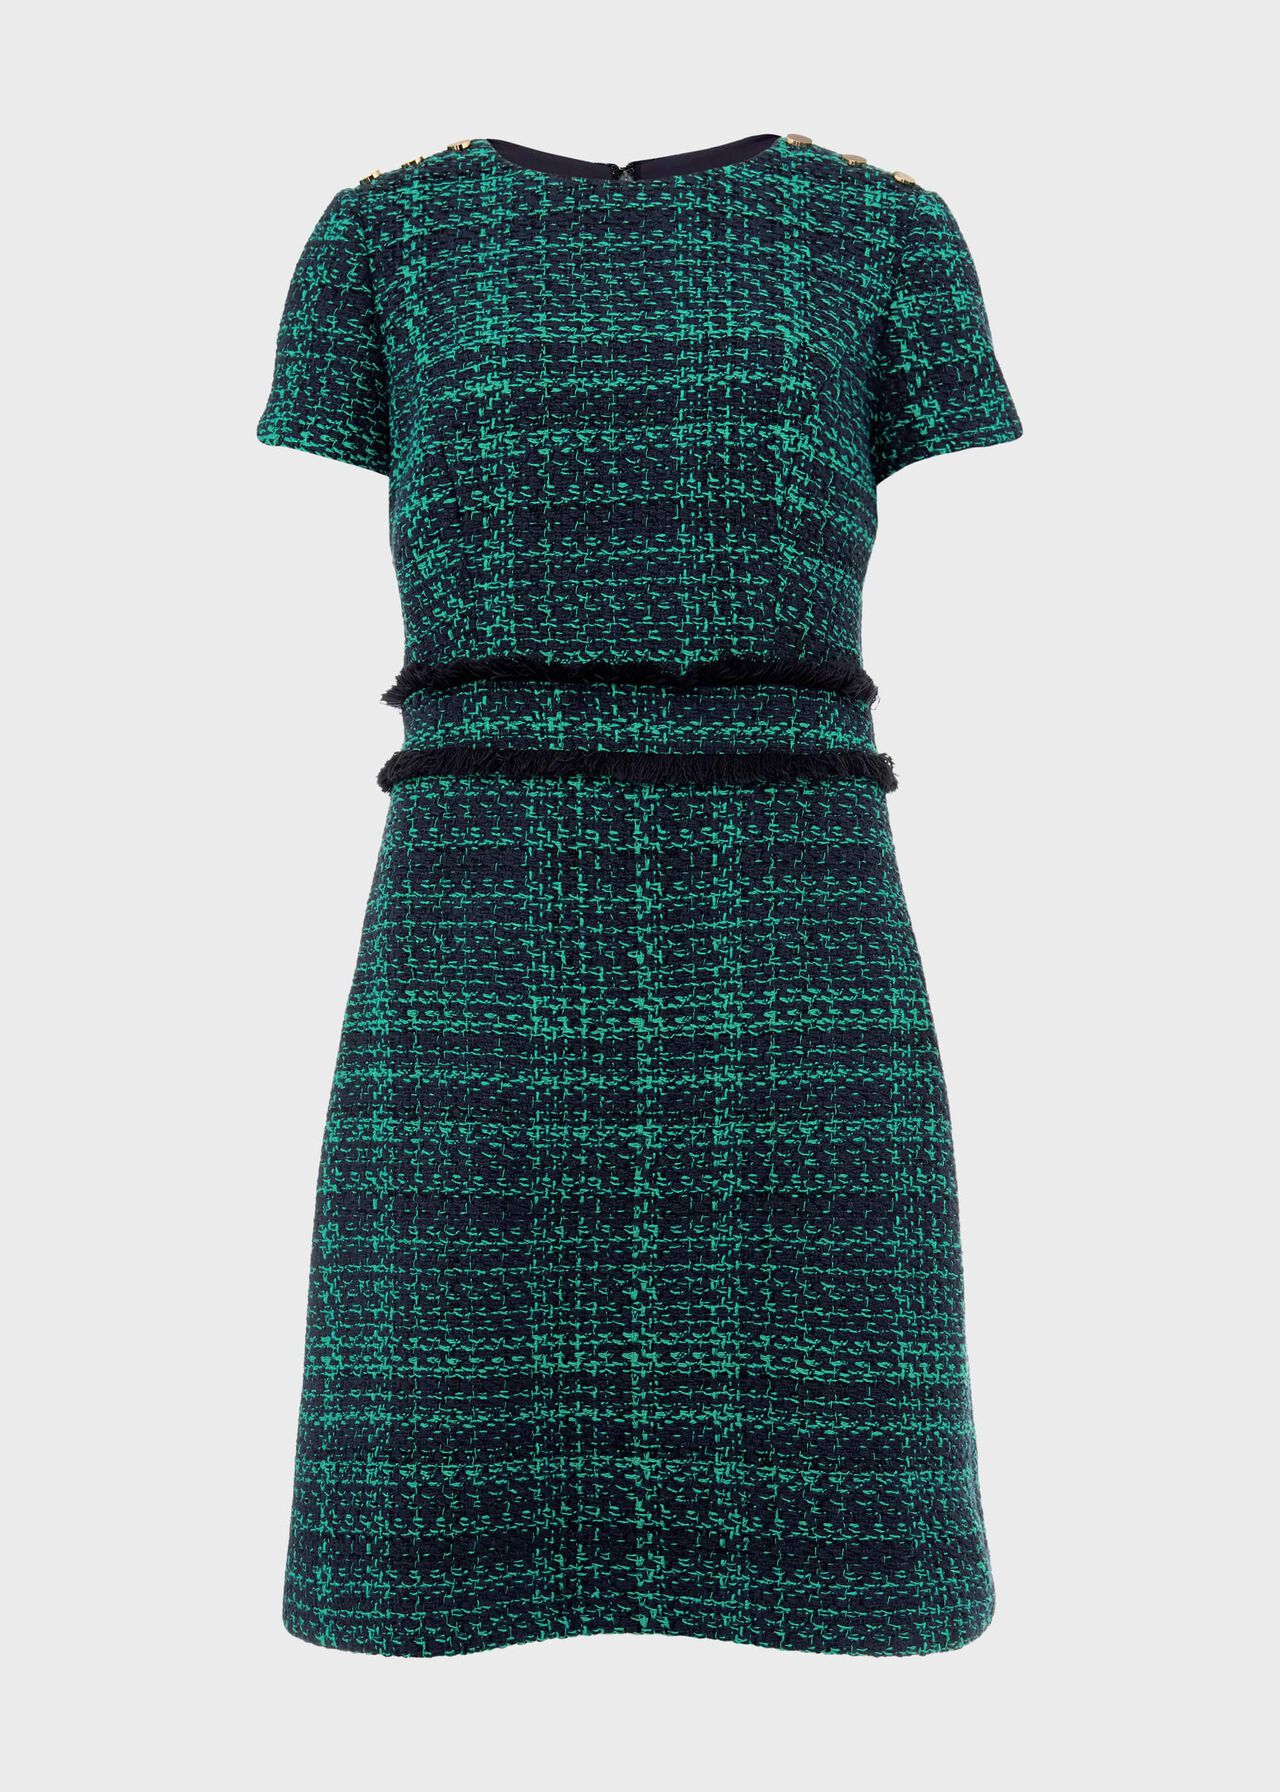 Rosa Tweed Dress Navy Apple Grn